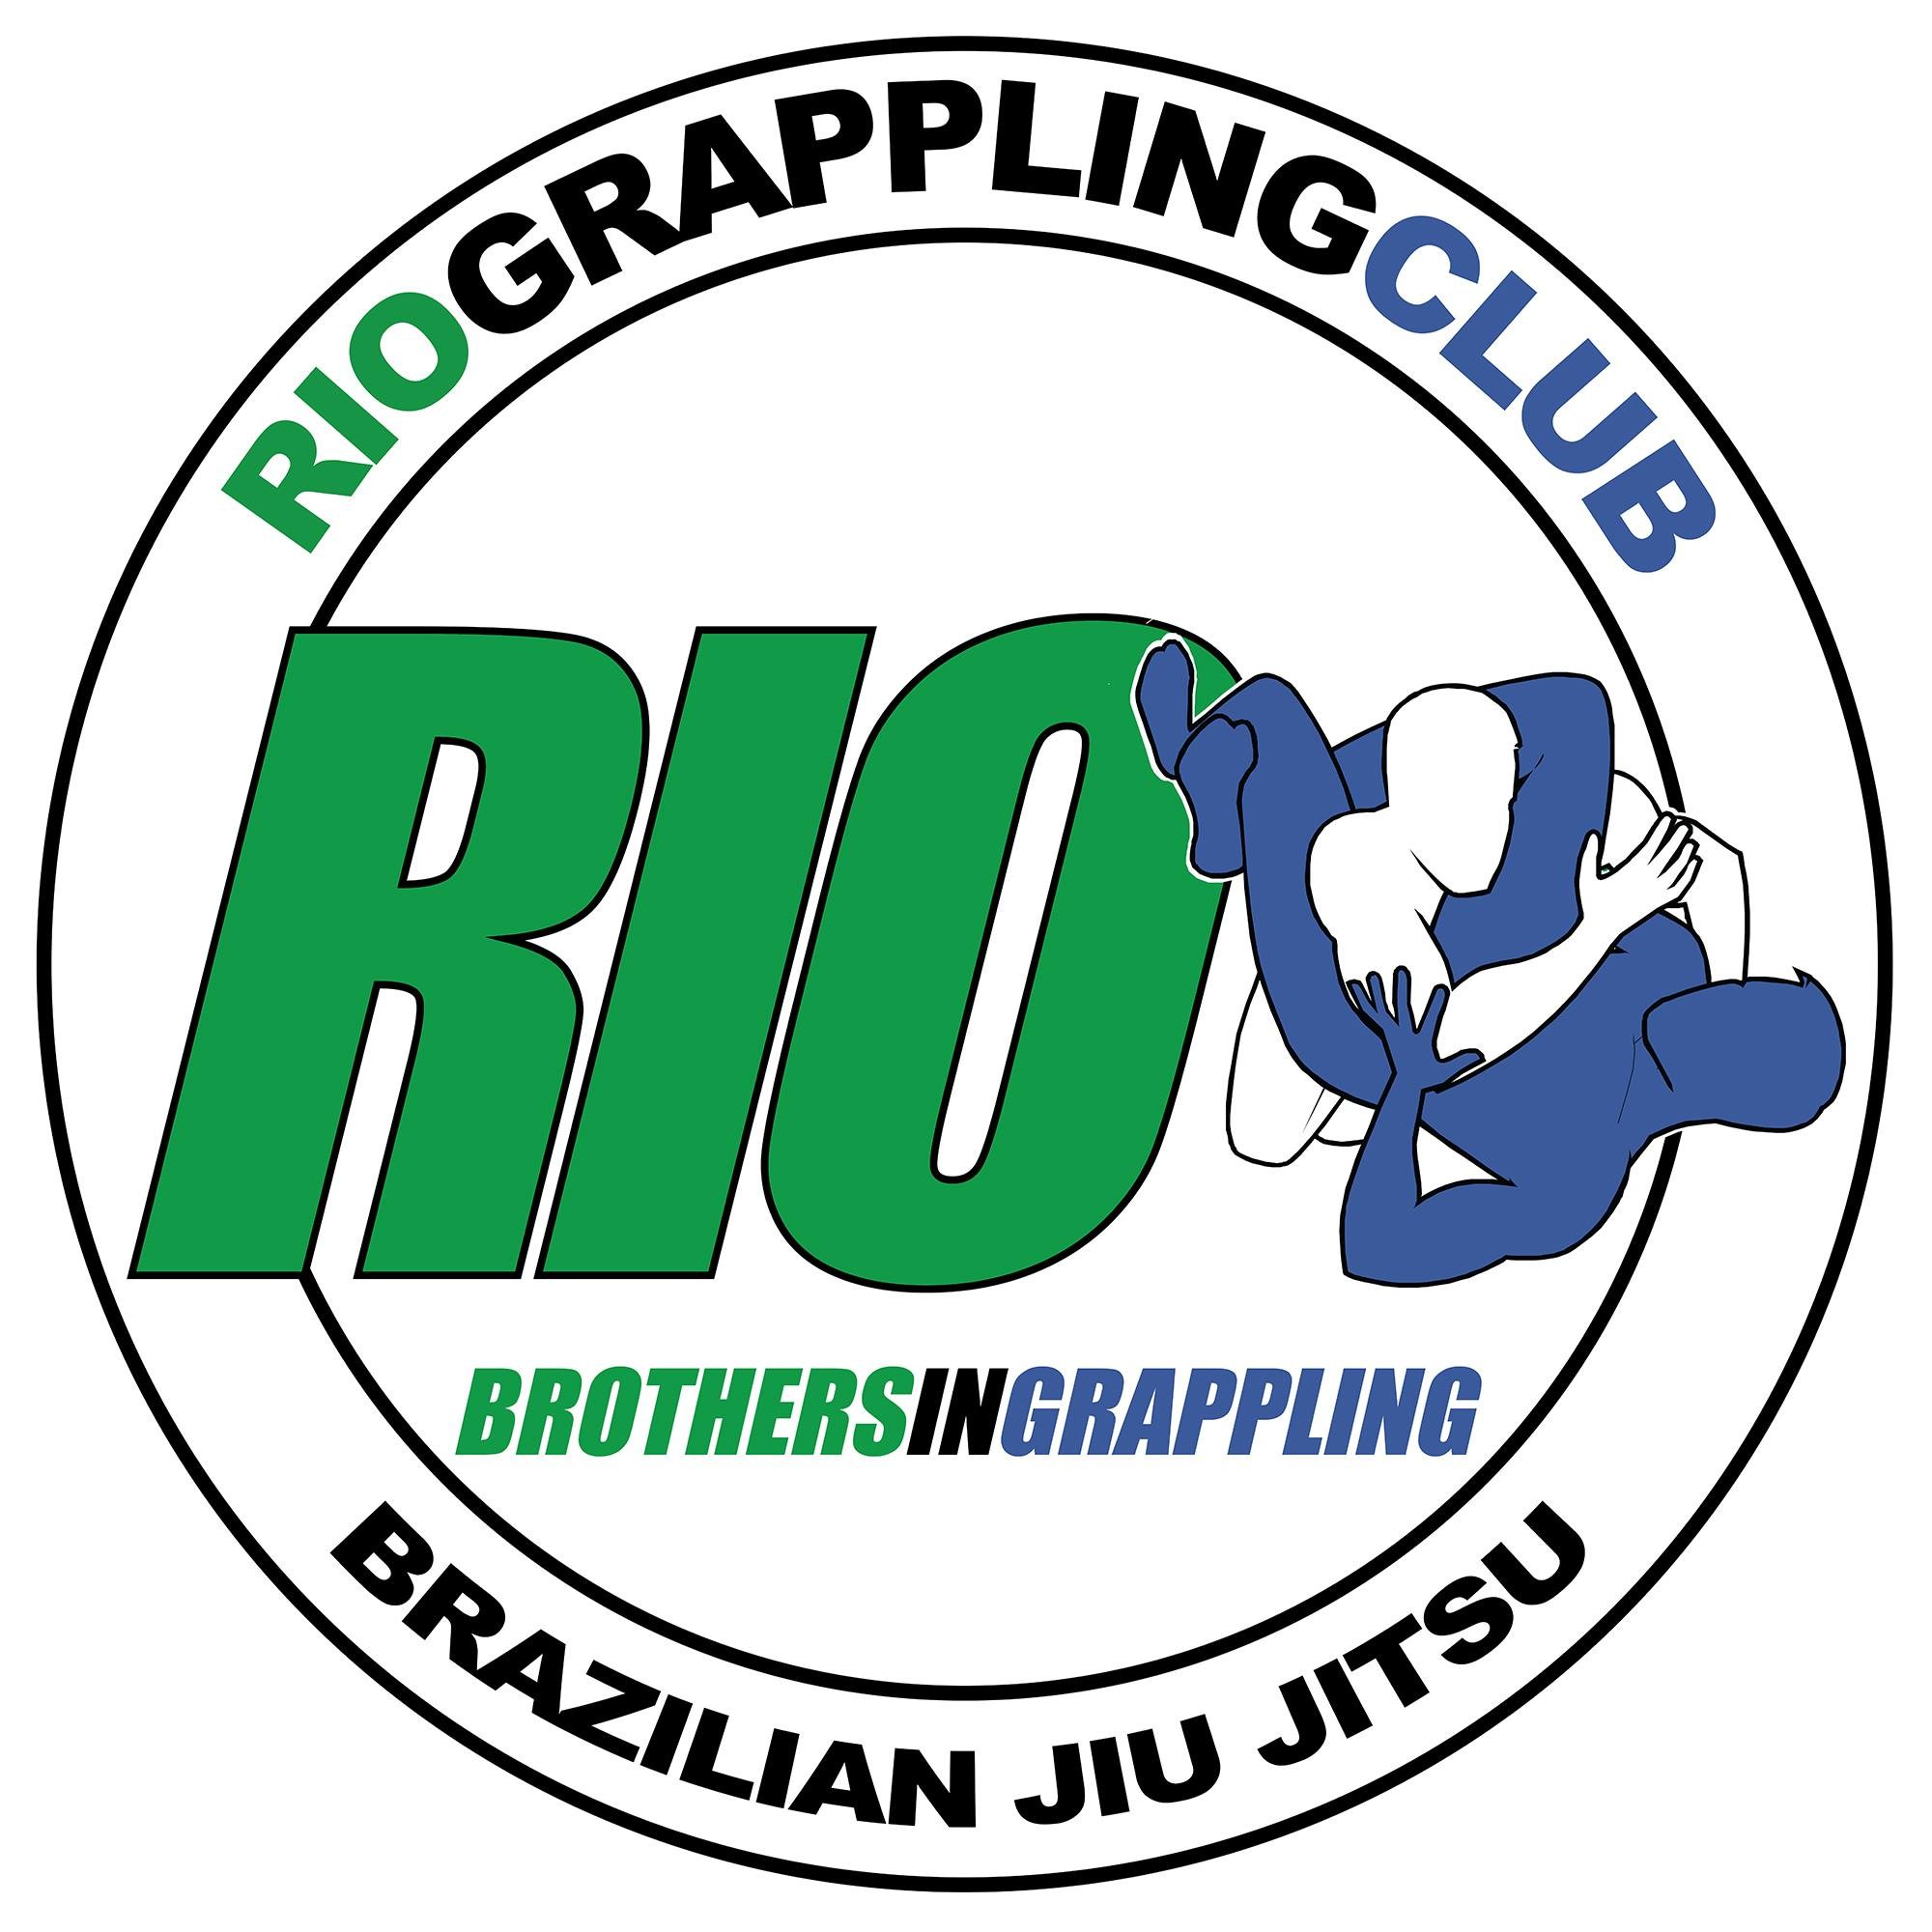 Rio Grappling Club Brothers in Grappling